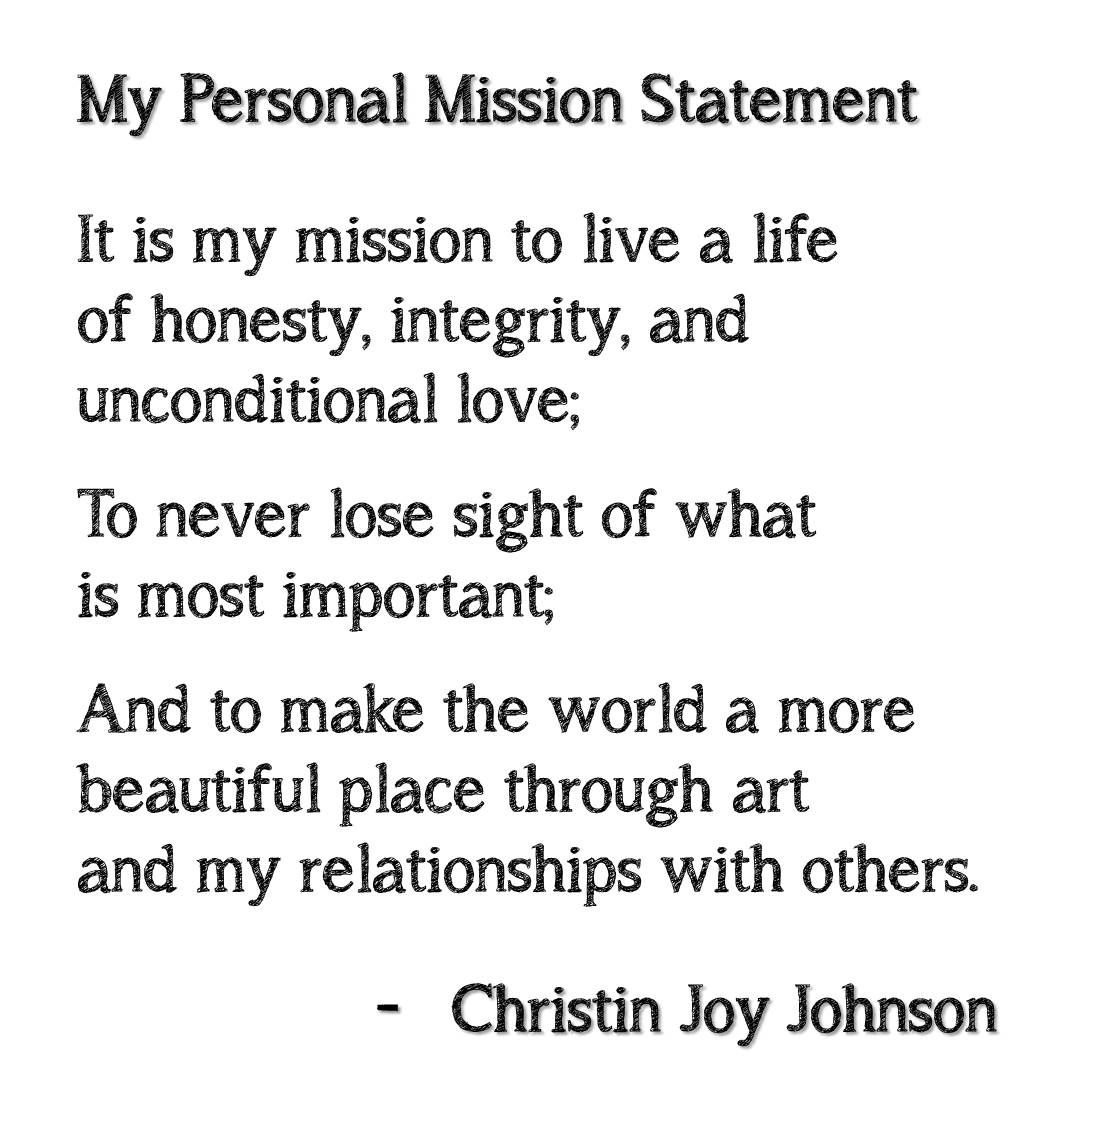 mission personals Founded in 1852 by jesuit priests, loyola's mission, values and vision has remained consistent learn about the storied history of loyola university.